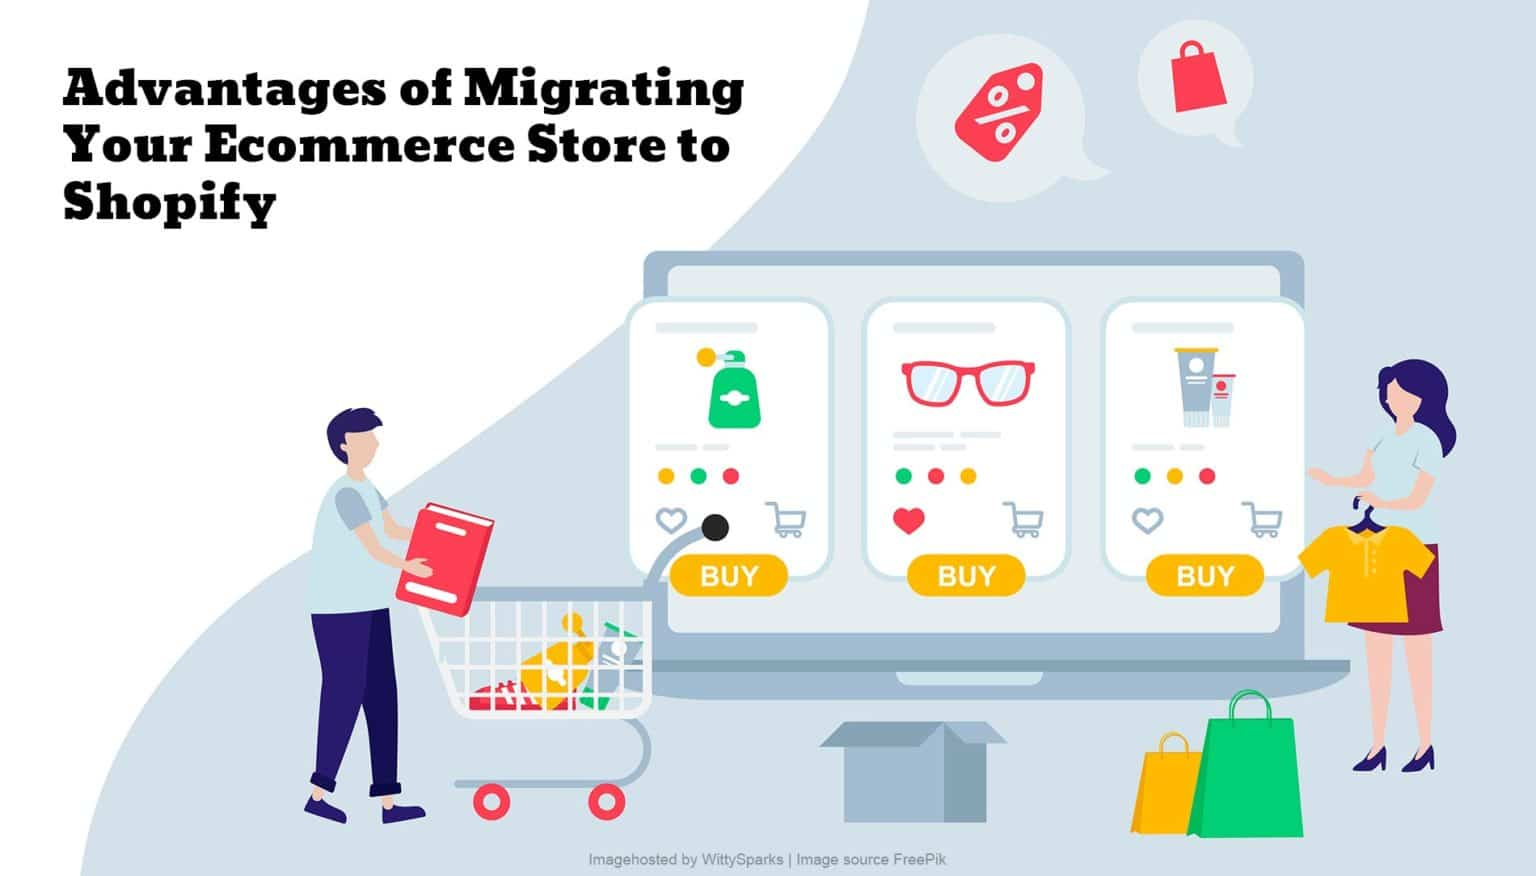 Advantages of migrating ecommerce store to shopify